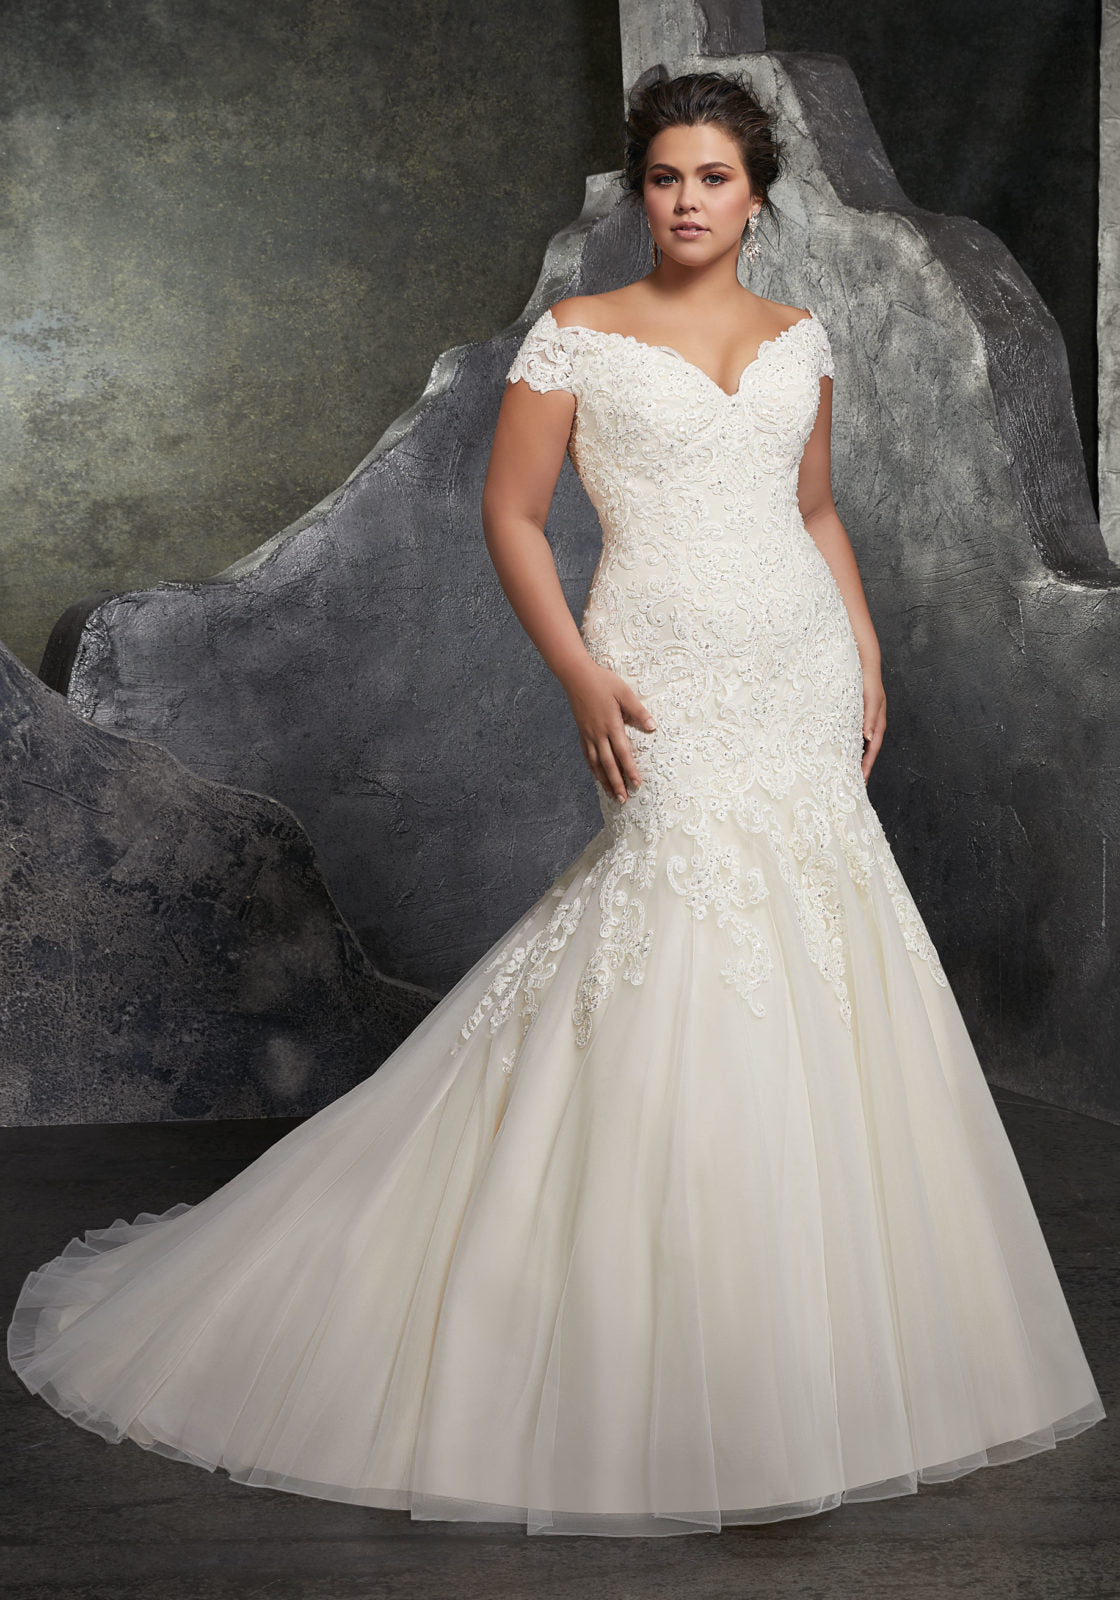 #C3243 - Concepcion Bridal & Quinceañera Boutique